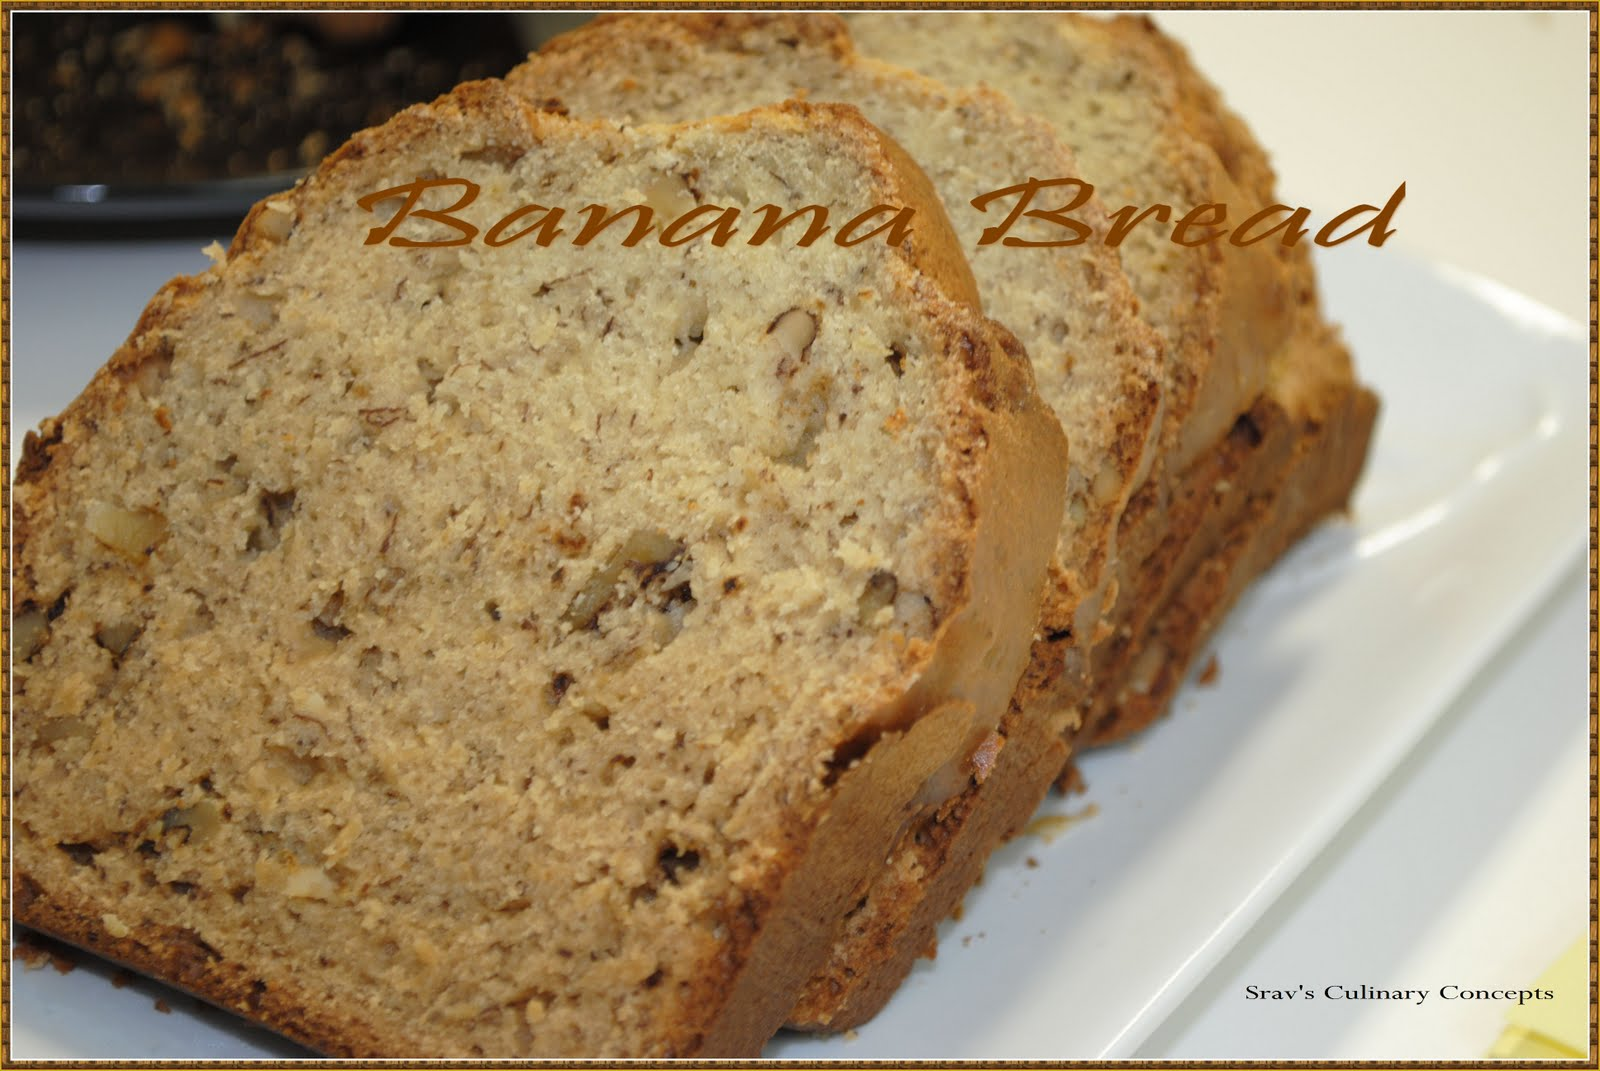 Srav's Culinary Concepts: Banana Bread